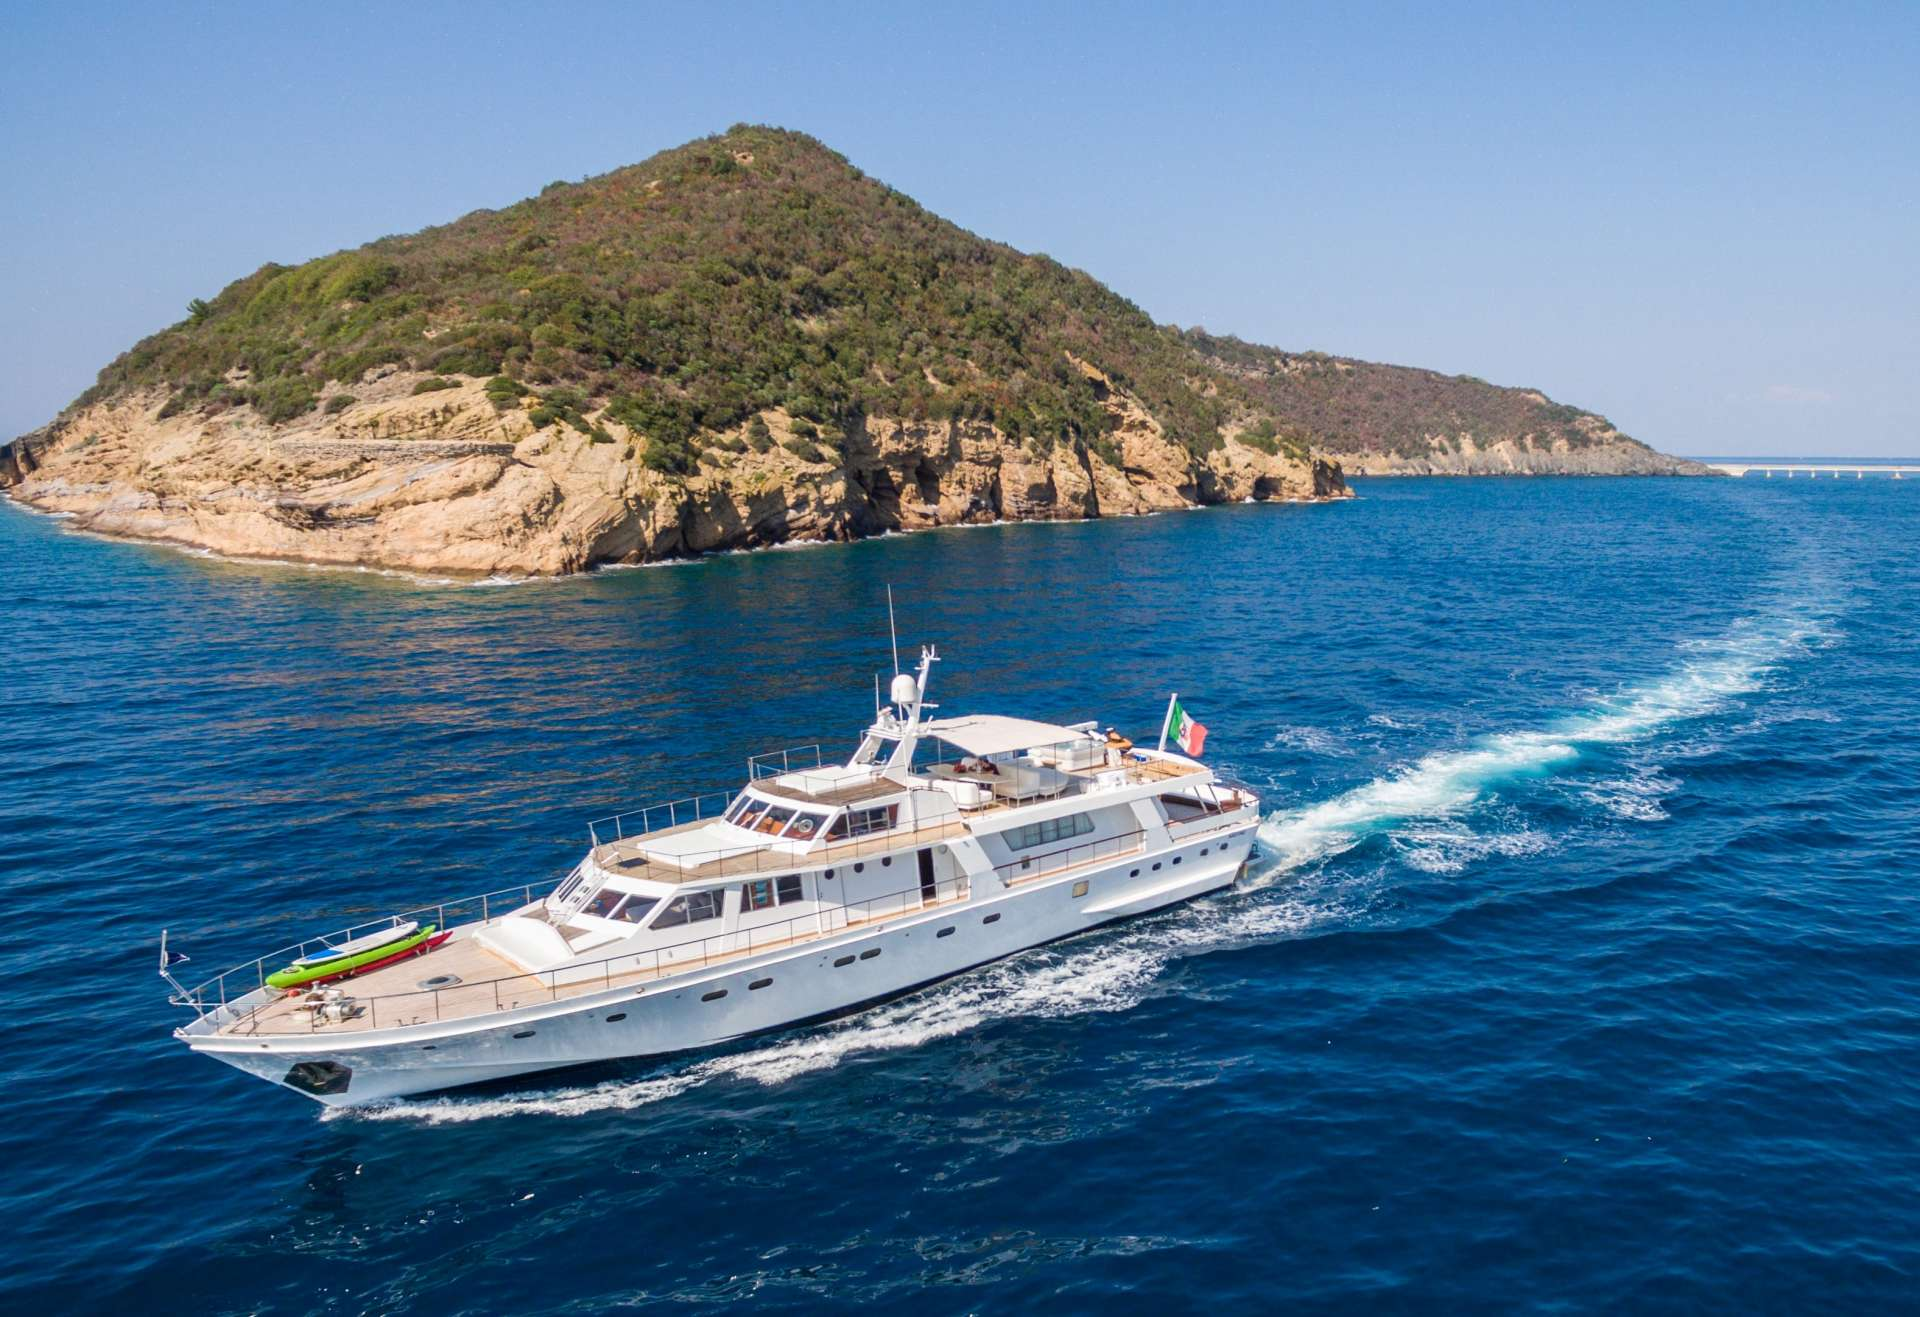 Power Yacht 'Power', 10 PAX, 6 Crew, 108.00 Ft, 33.00 Meters, Built 1975, Admiral - It, Refit Year 2015